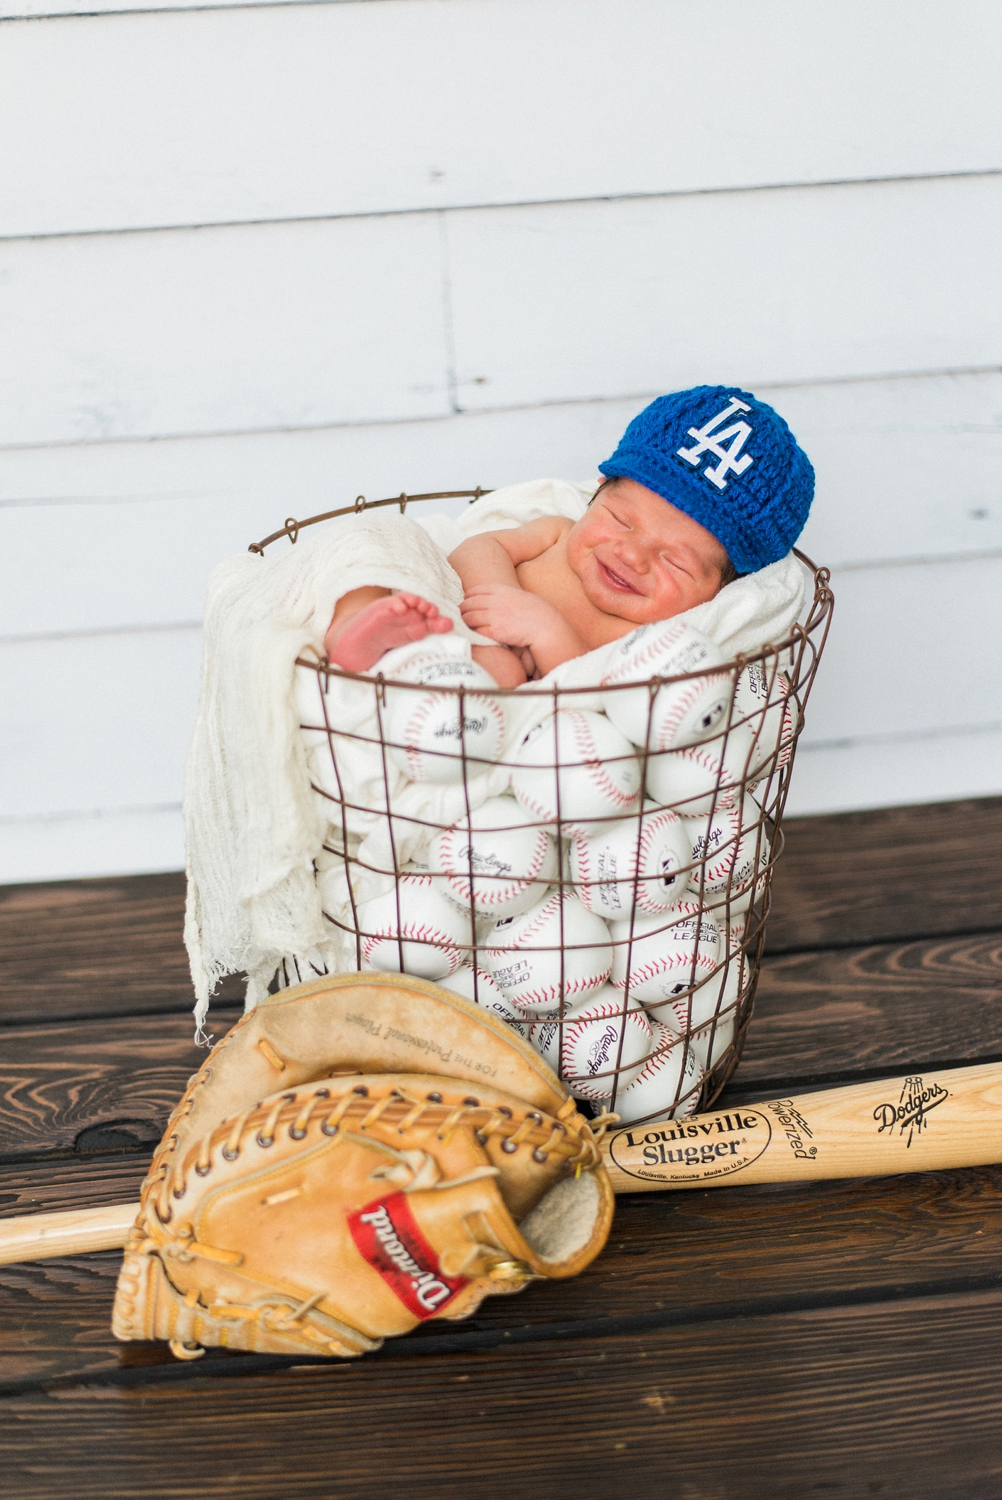 portland-oregon-newborn-photographer-sleeping-baby-boy-bucket-of-baseballs-basket-shelley-marie-photography-146.jpg